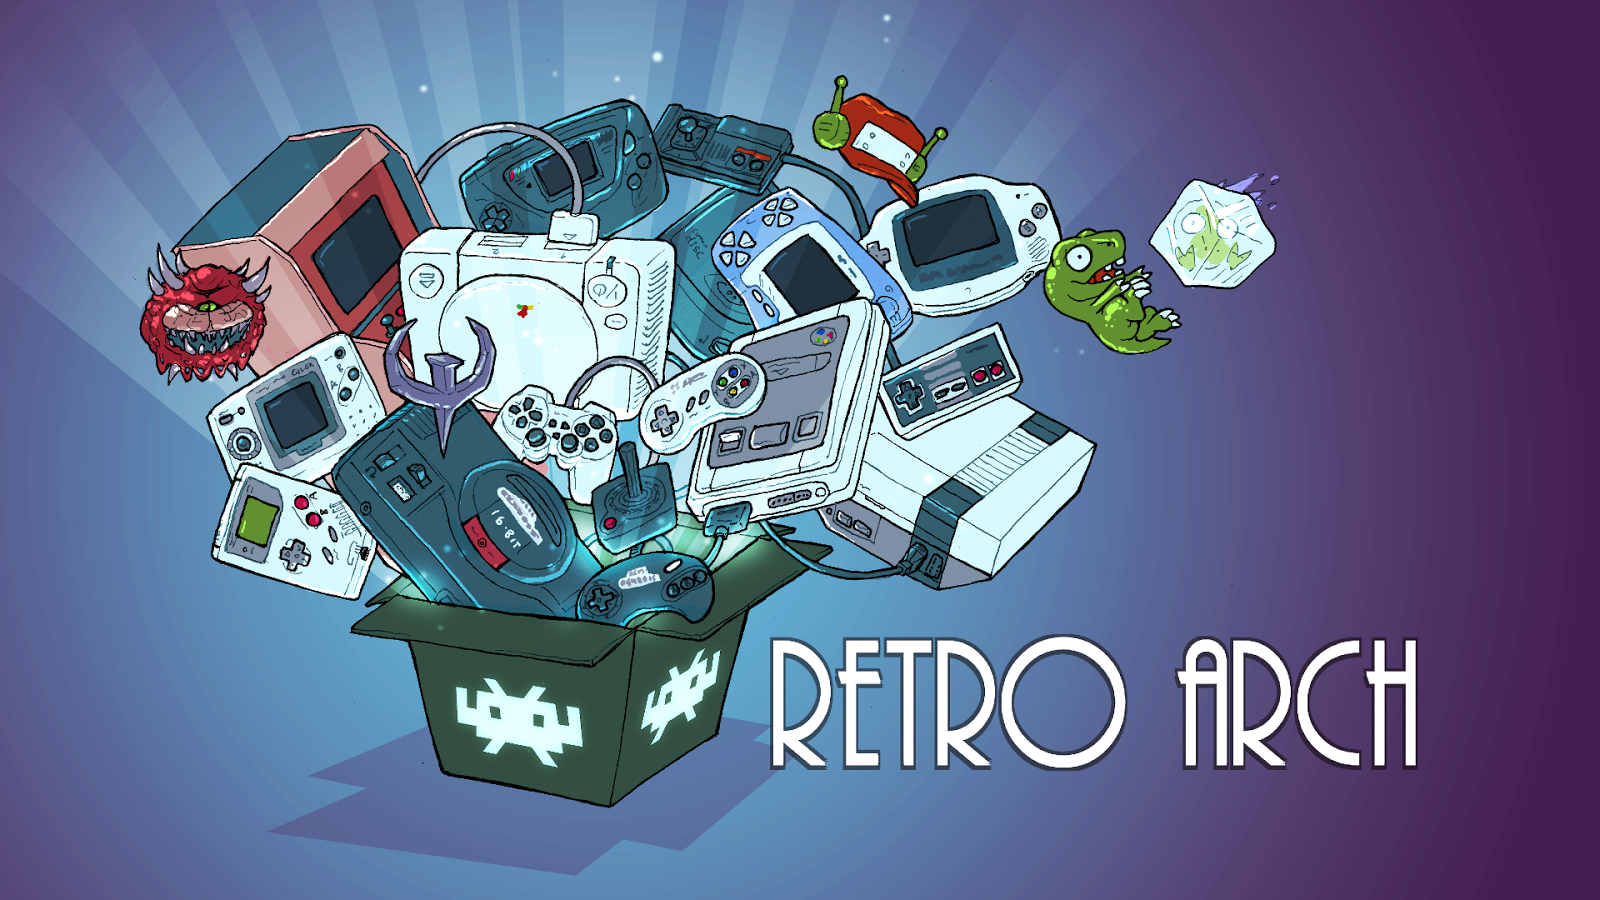 Retroarch gets a big update on Android and iOS with Netplay